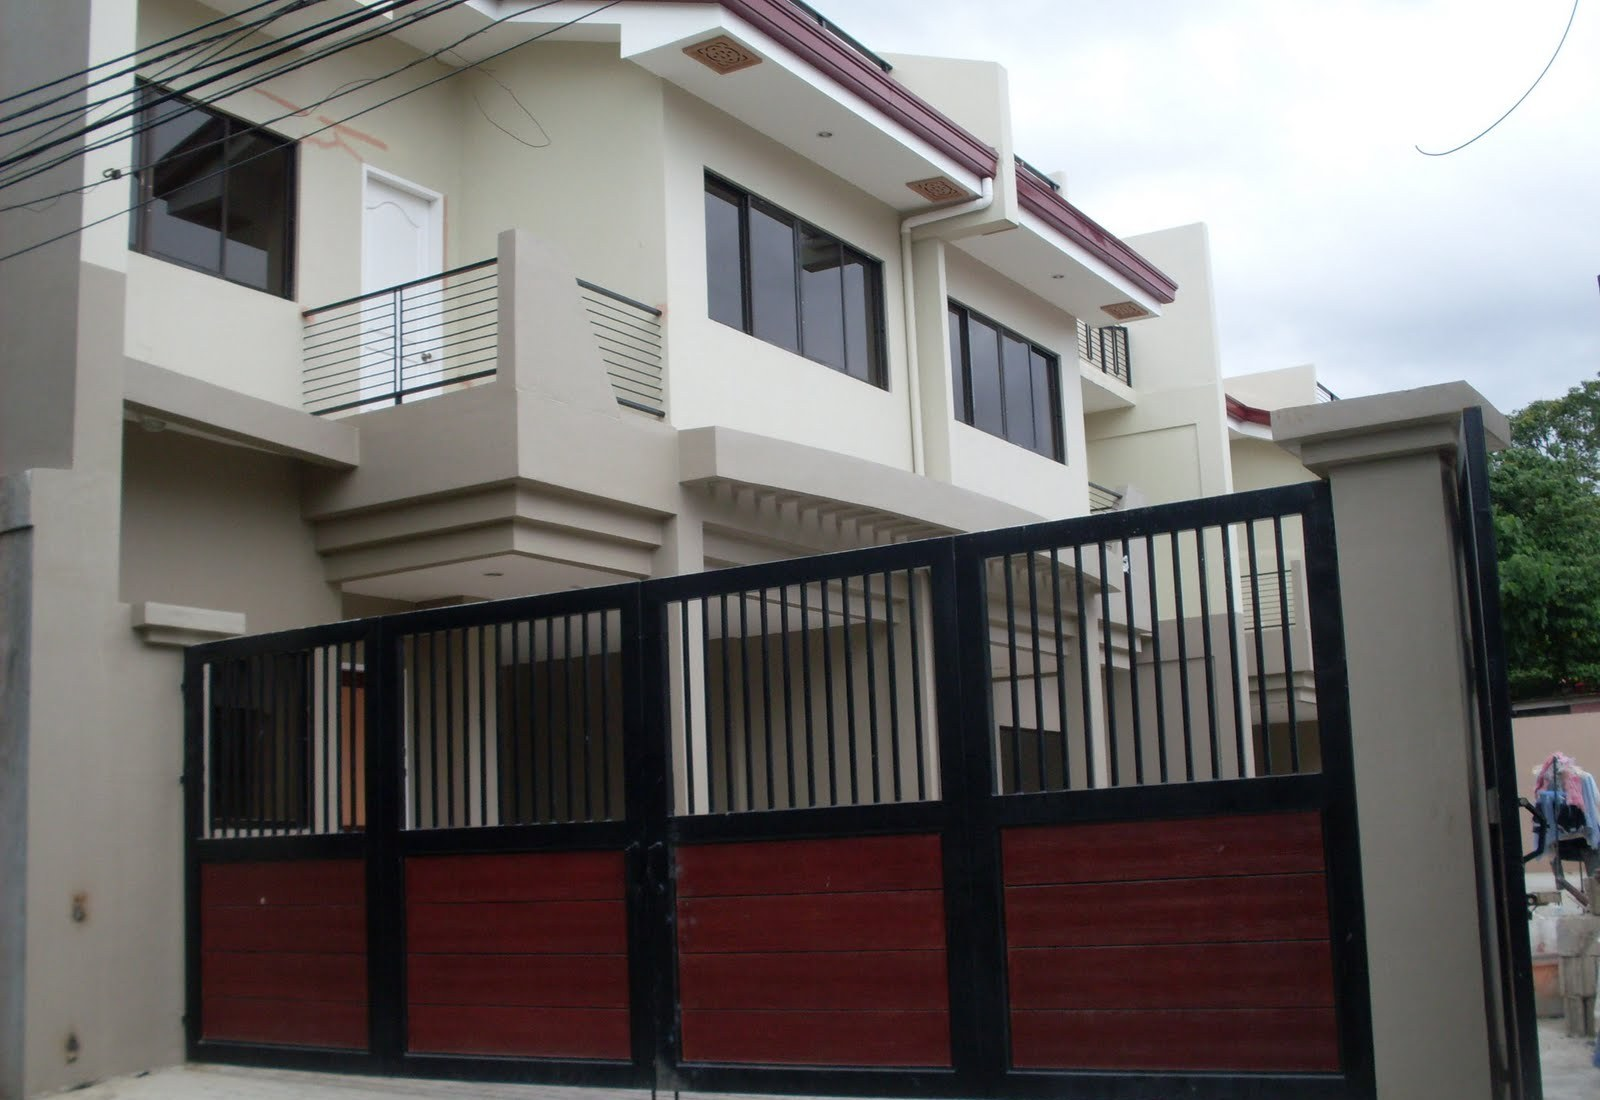 Nicebalay for sale 6 bedroom house and lot very near for 6 bedroom house for sale near me